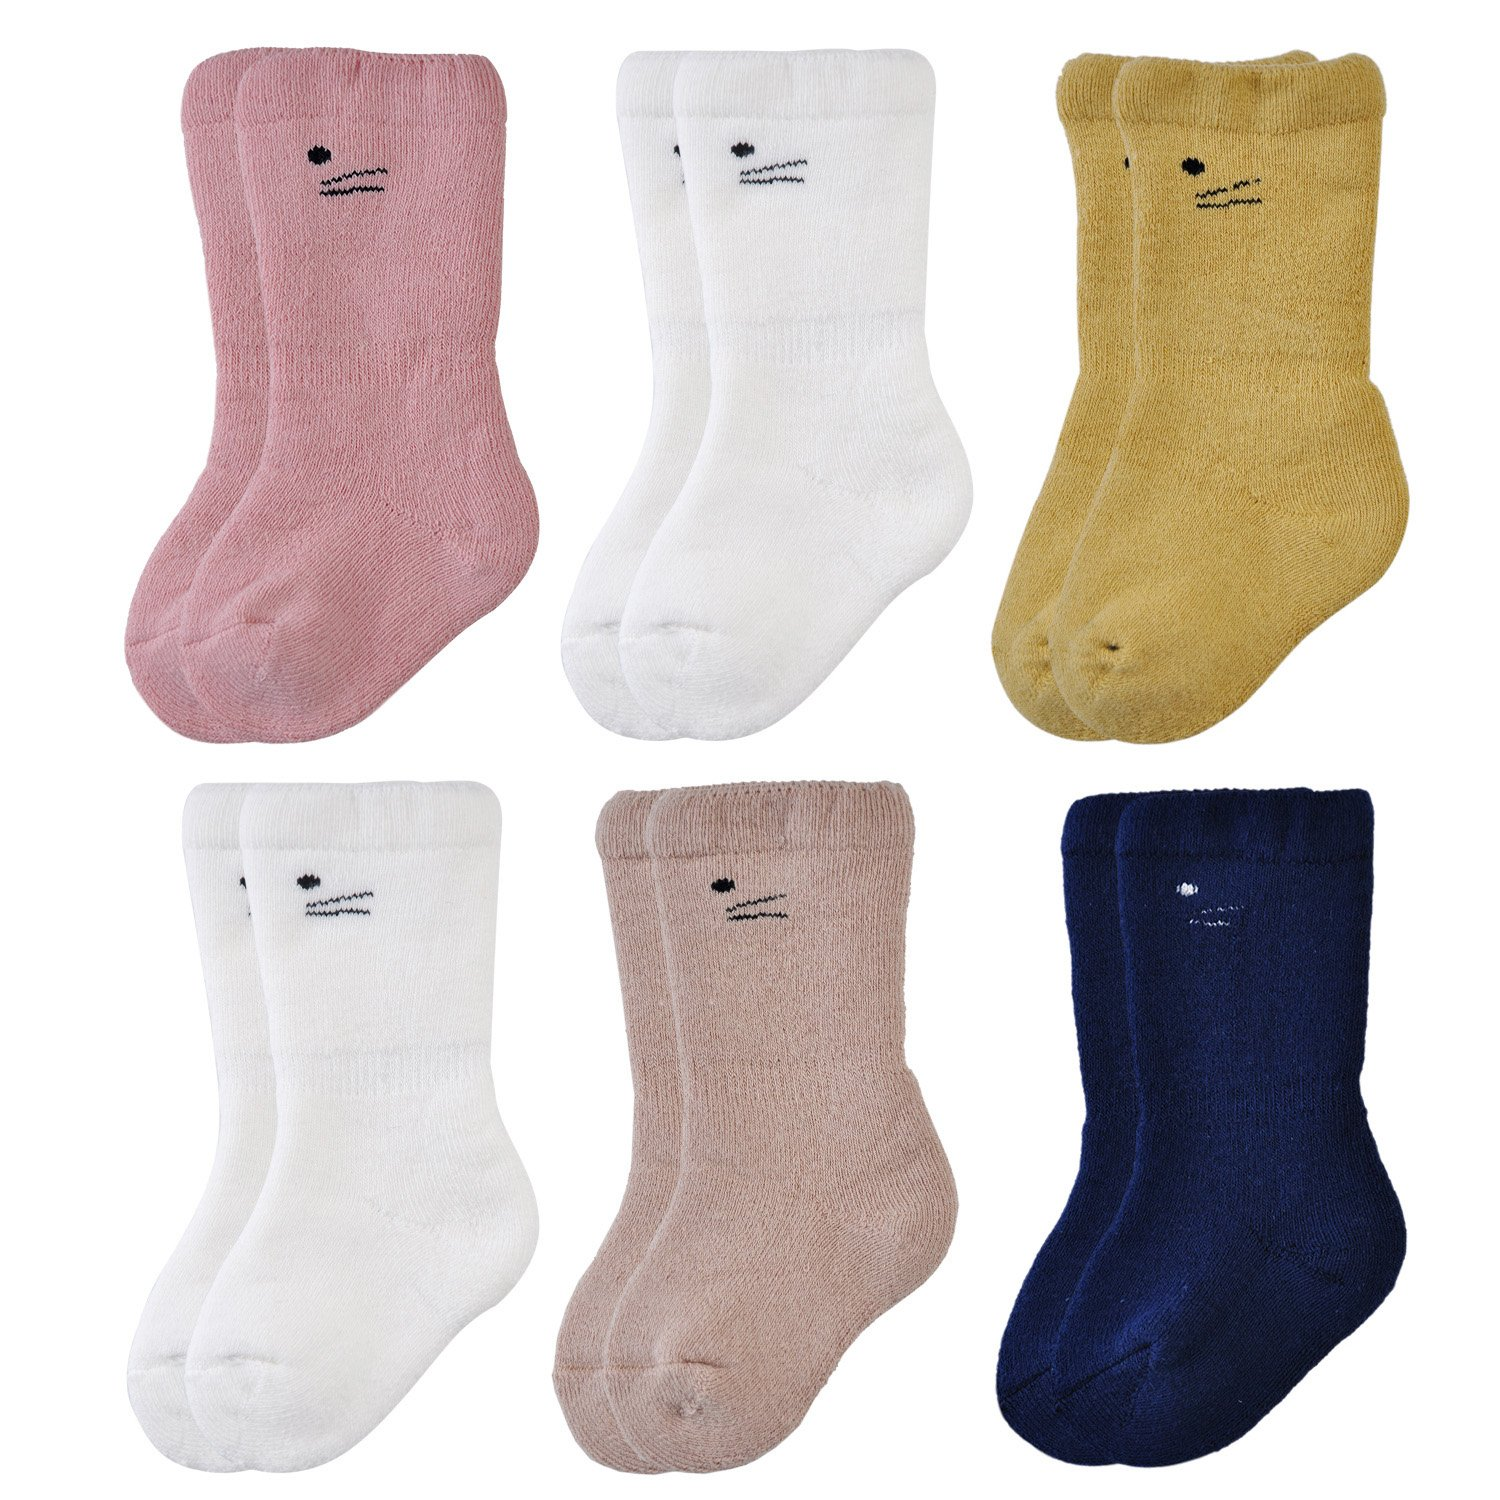 Epeius Unisex Baby Super Soft Terry Turn Cuff Socks (Pack of 3/6)